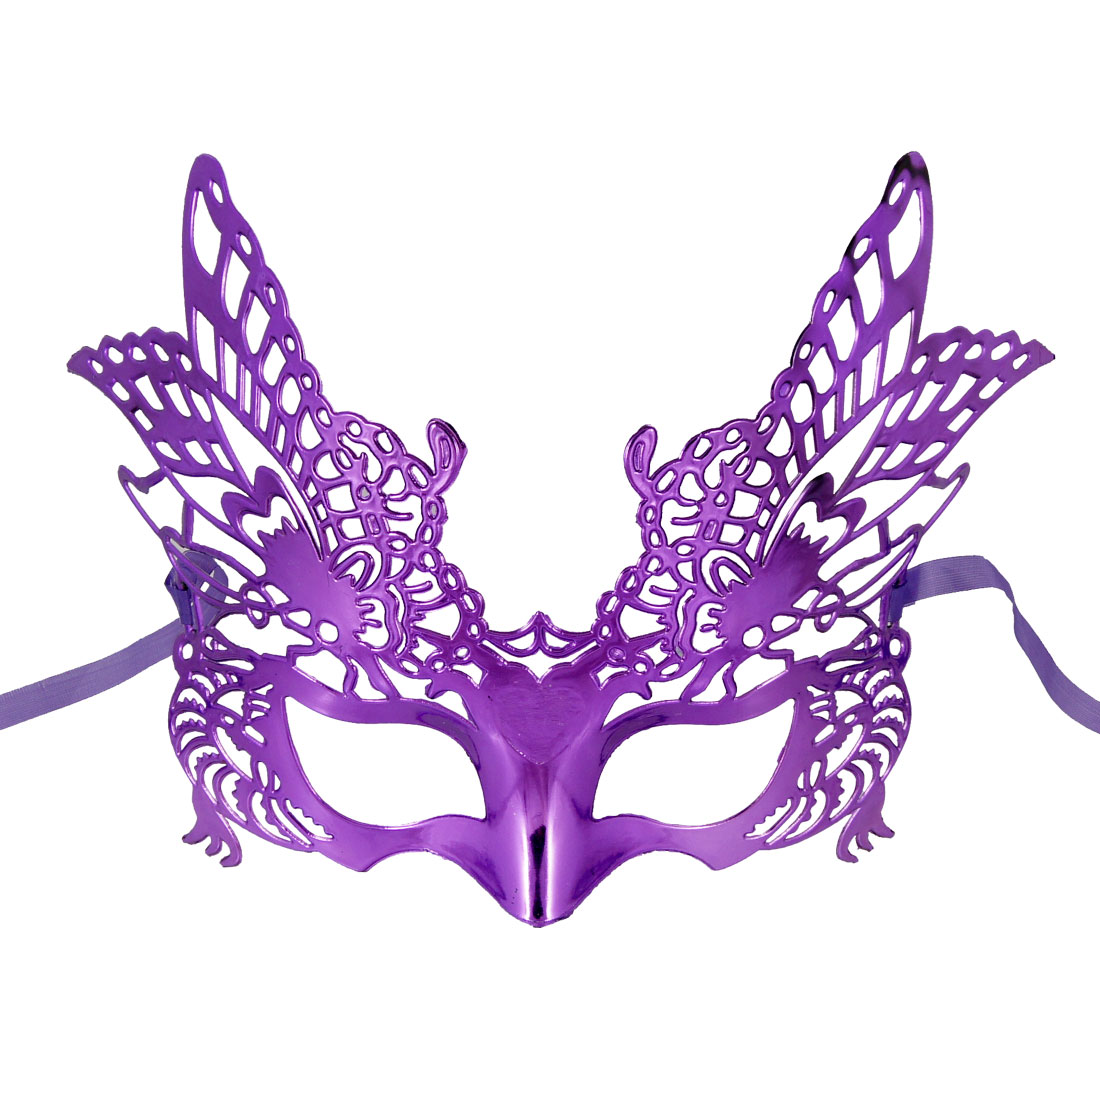 Similiar Masquerade Ball Masks Clip Art Keywords.